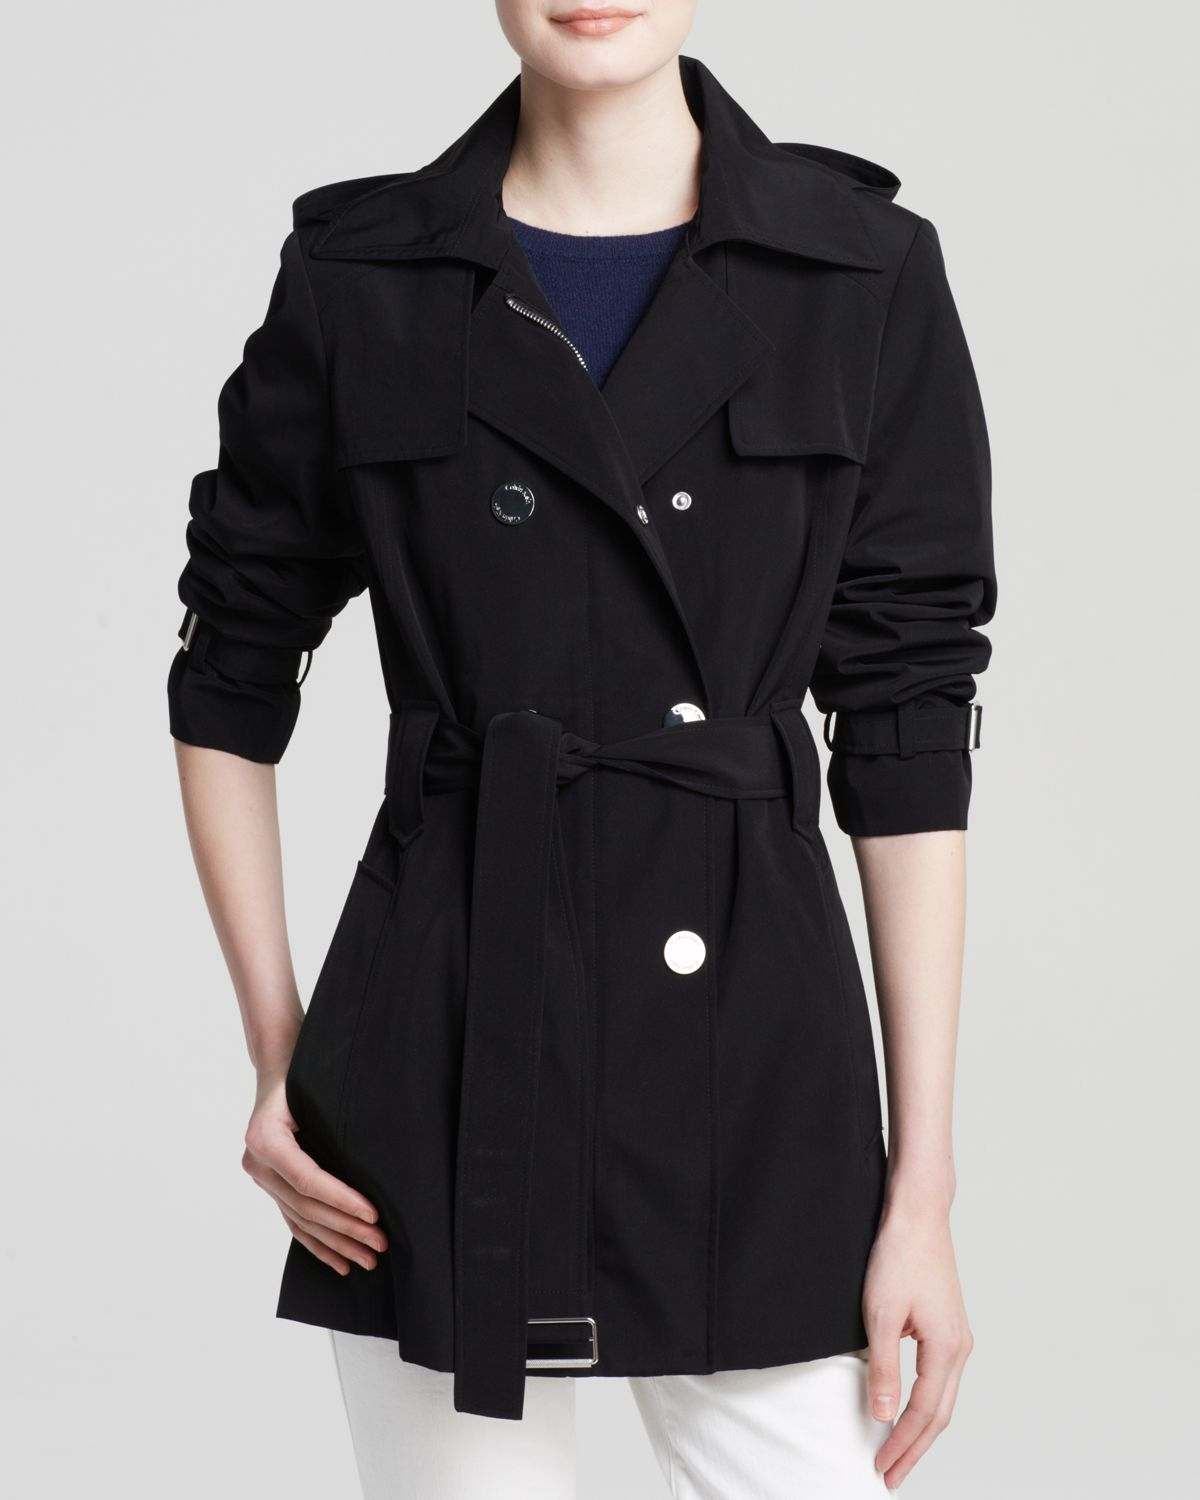 Buy Lapel Contrast Trim Double Breasted Trench Coats online with cheap prices and discover fashion Trench Coats at taradsod.tk